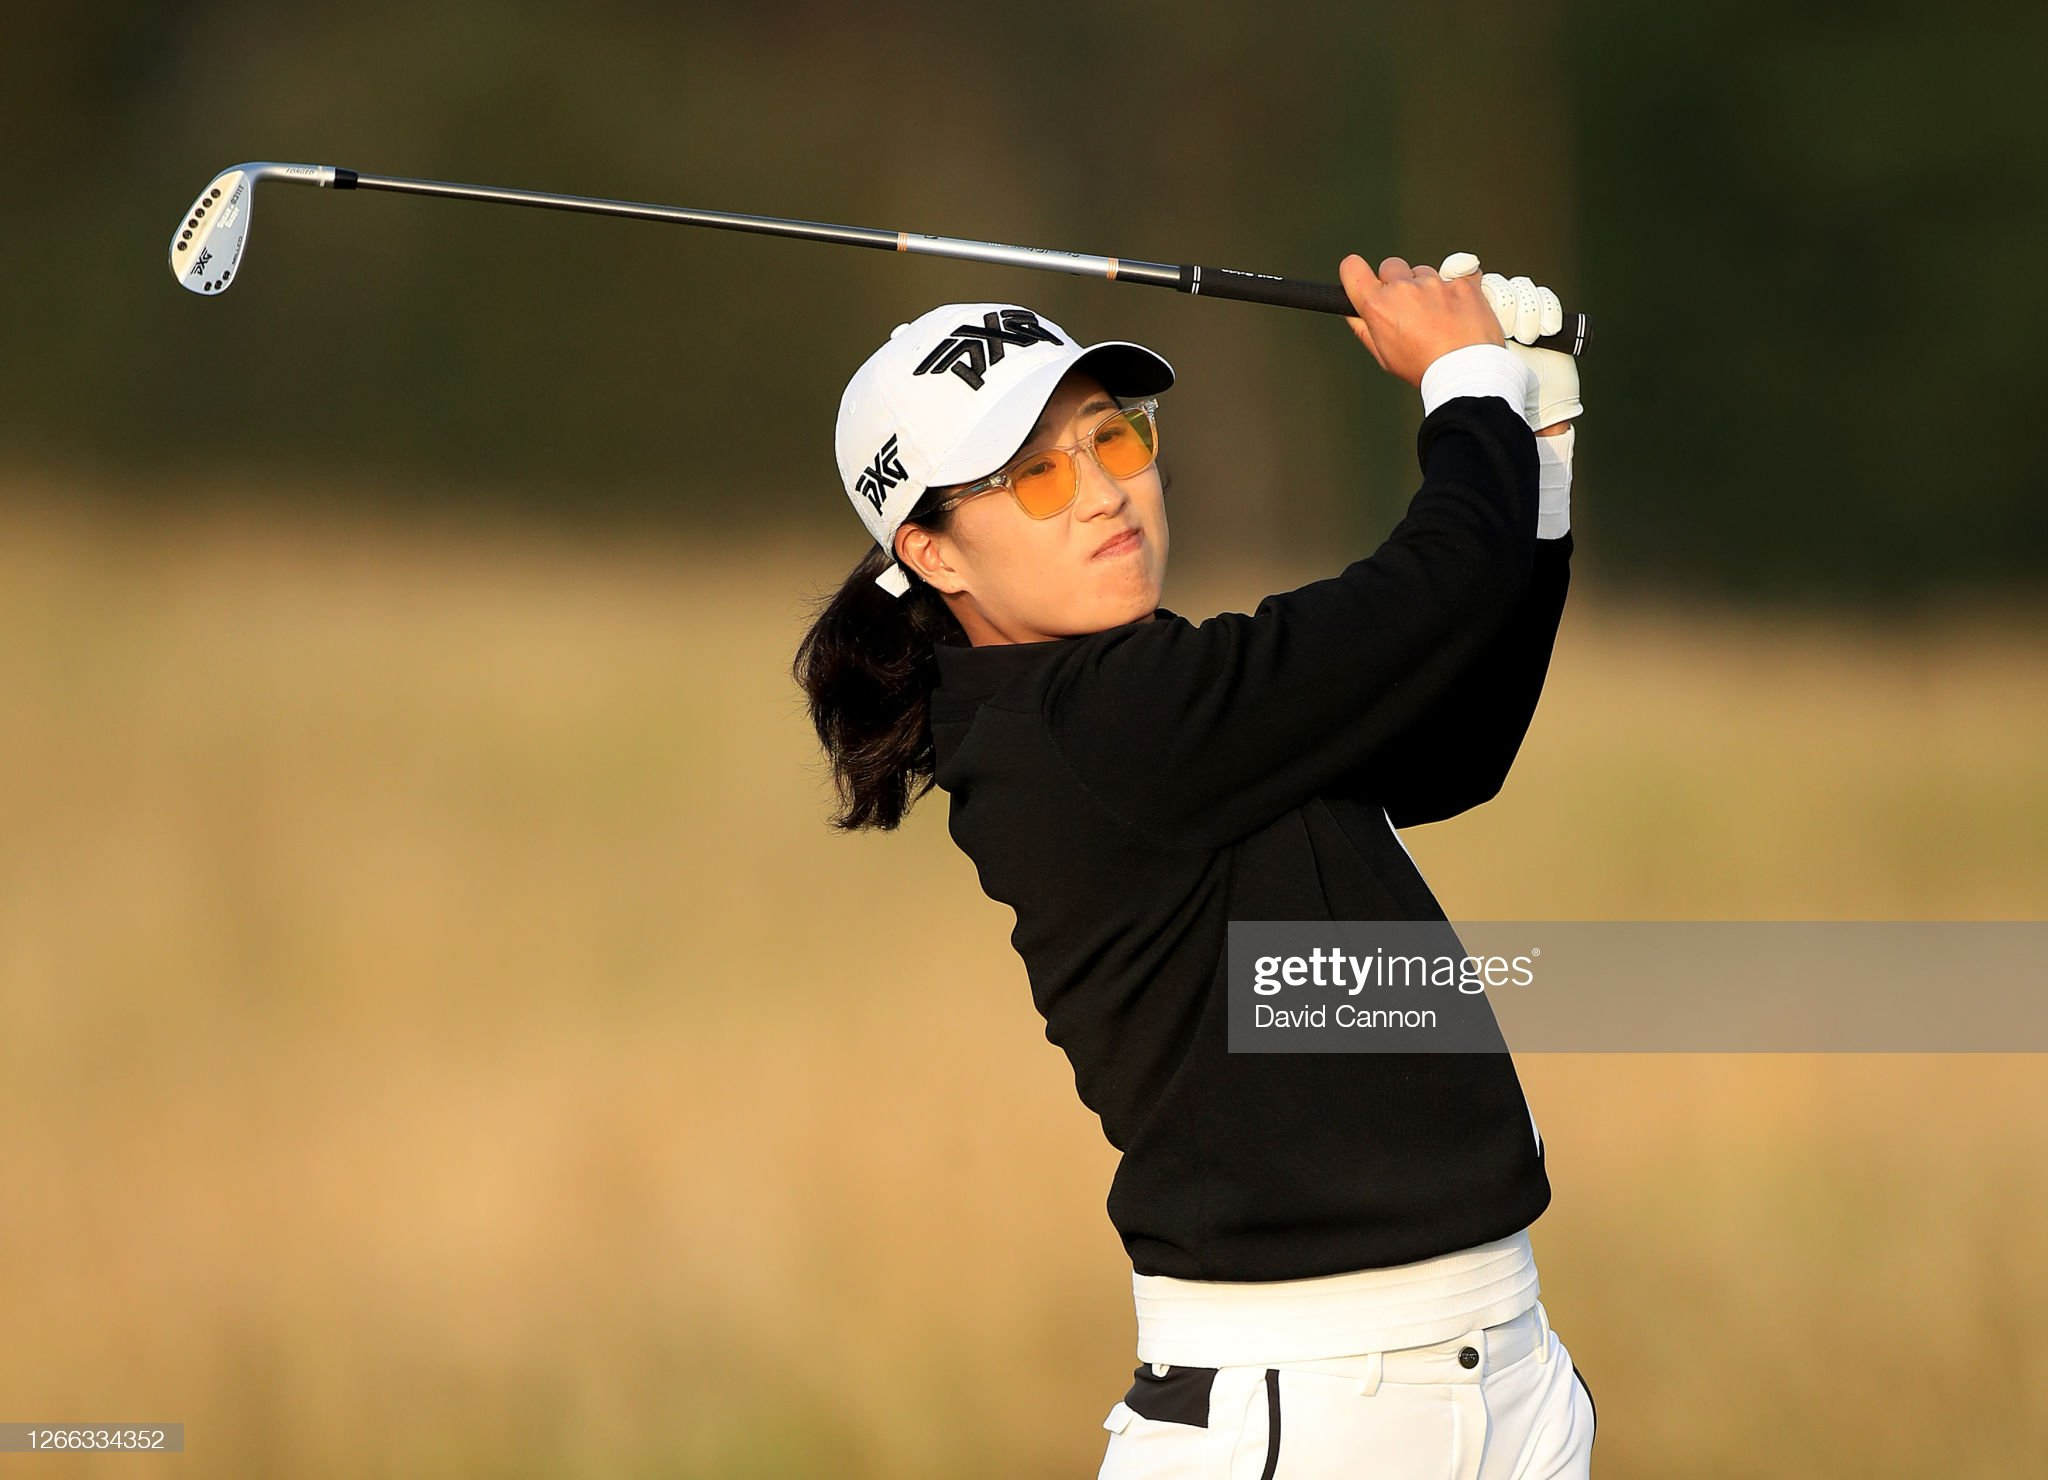 https://media.gettyimages.com/photos/jennifer-song-of-the-united-states-plays-her-second-shot-on-the-18th-picture-id1266334352?s=2048x2048